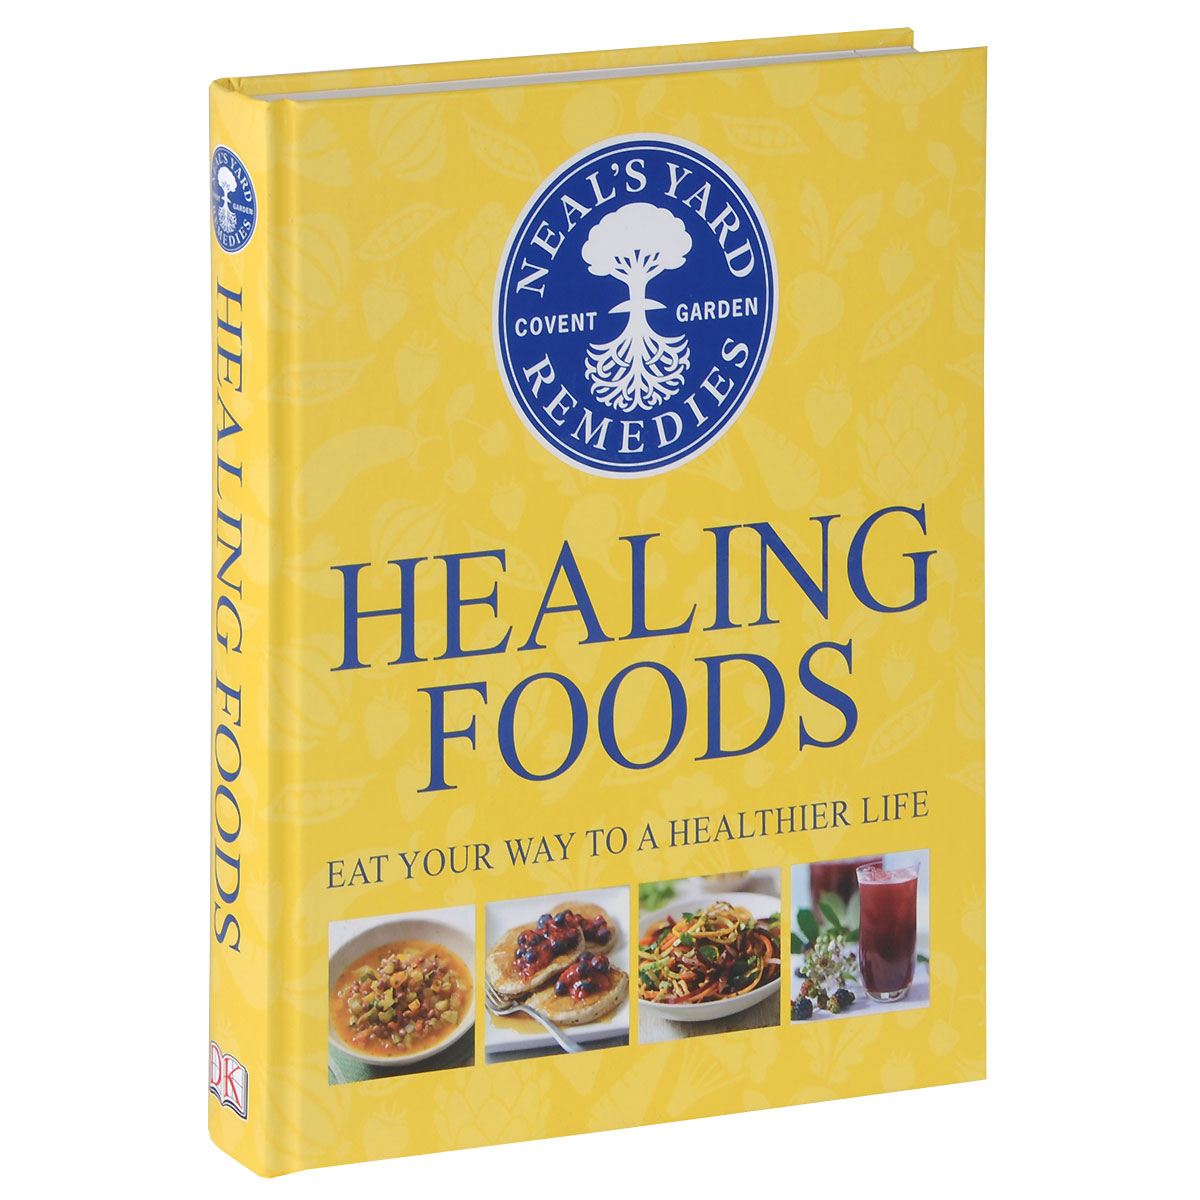 Healing Foods presidential nominee will address a gathering